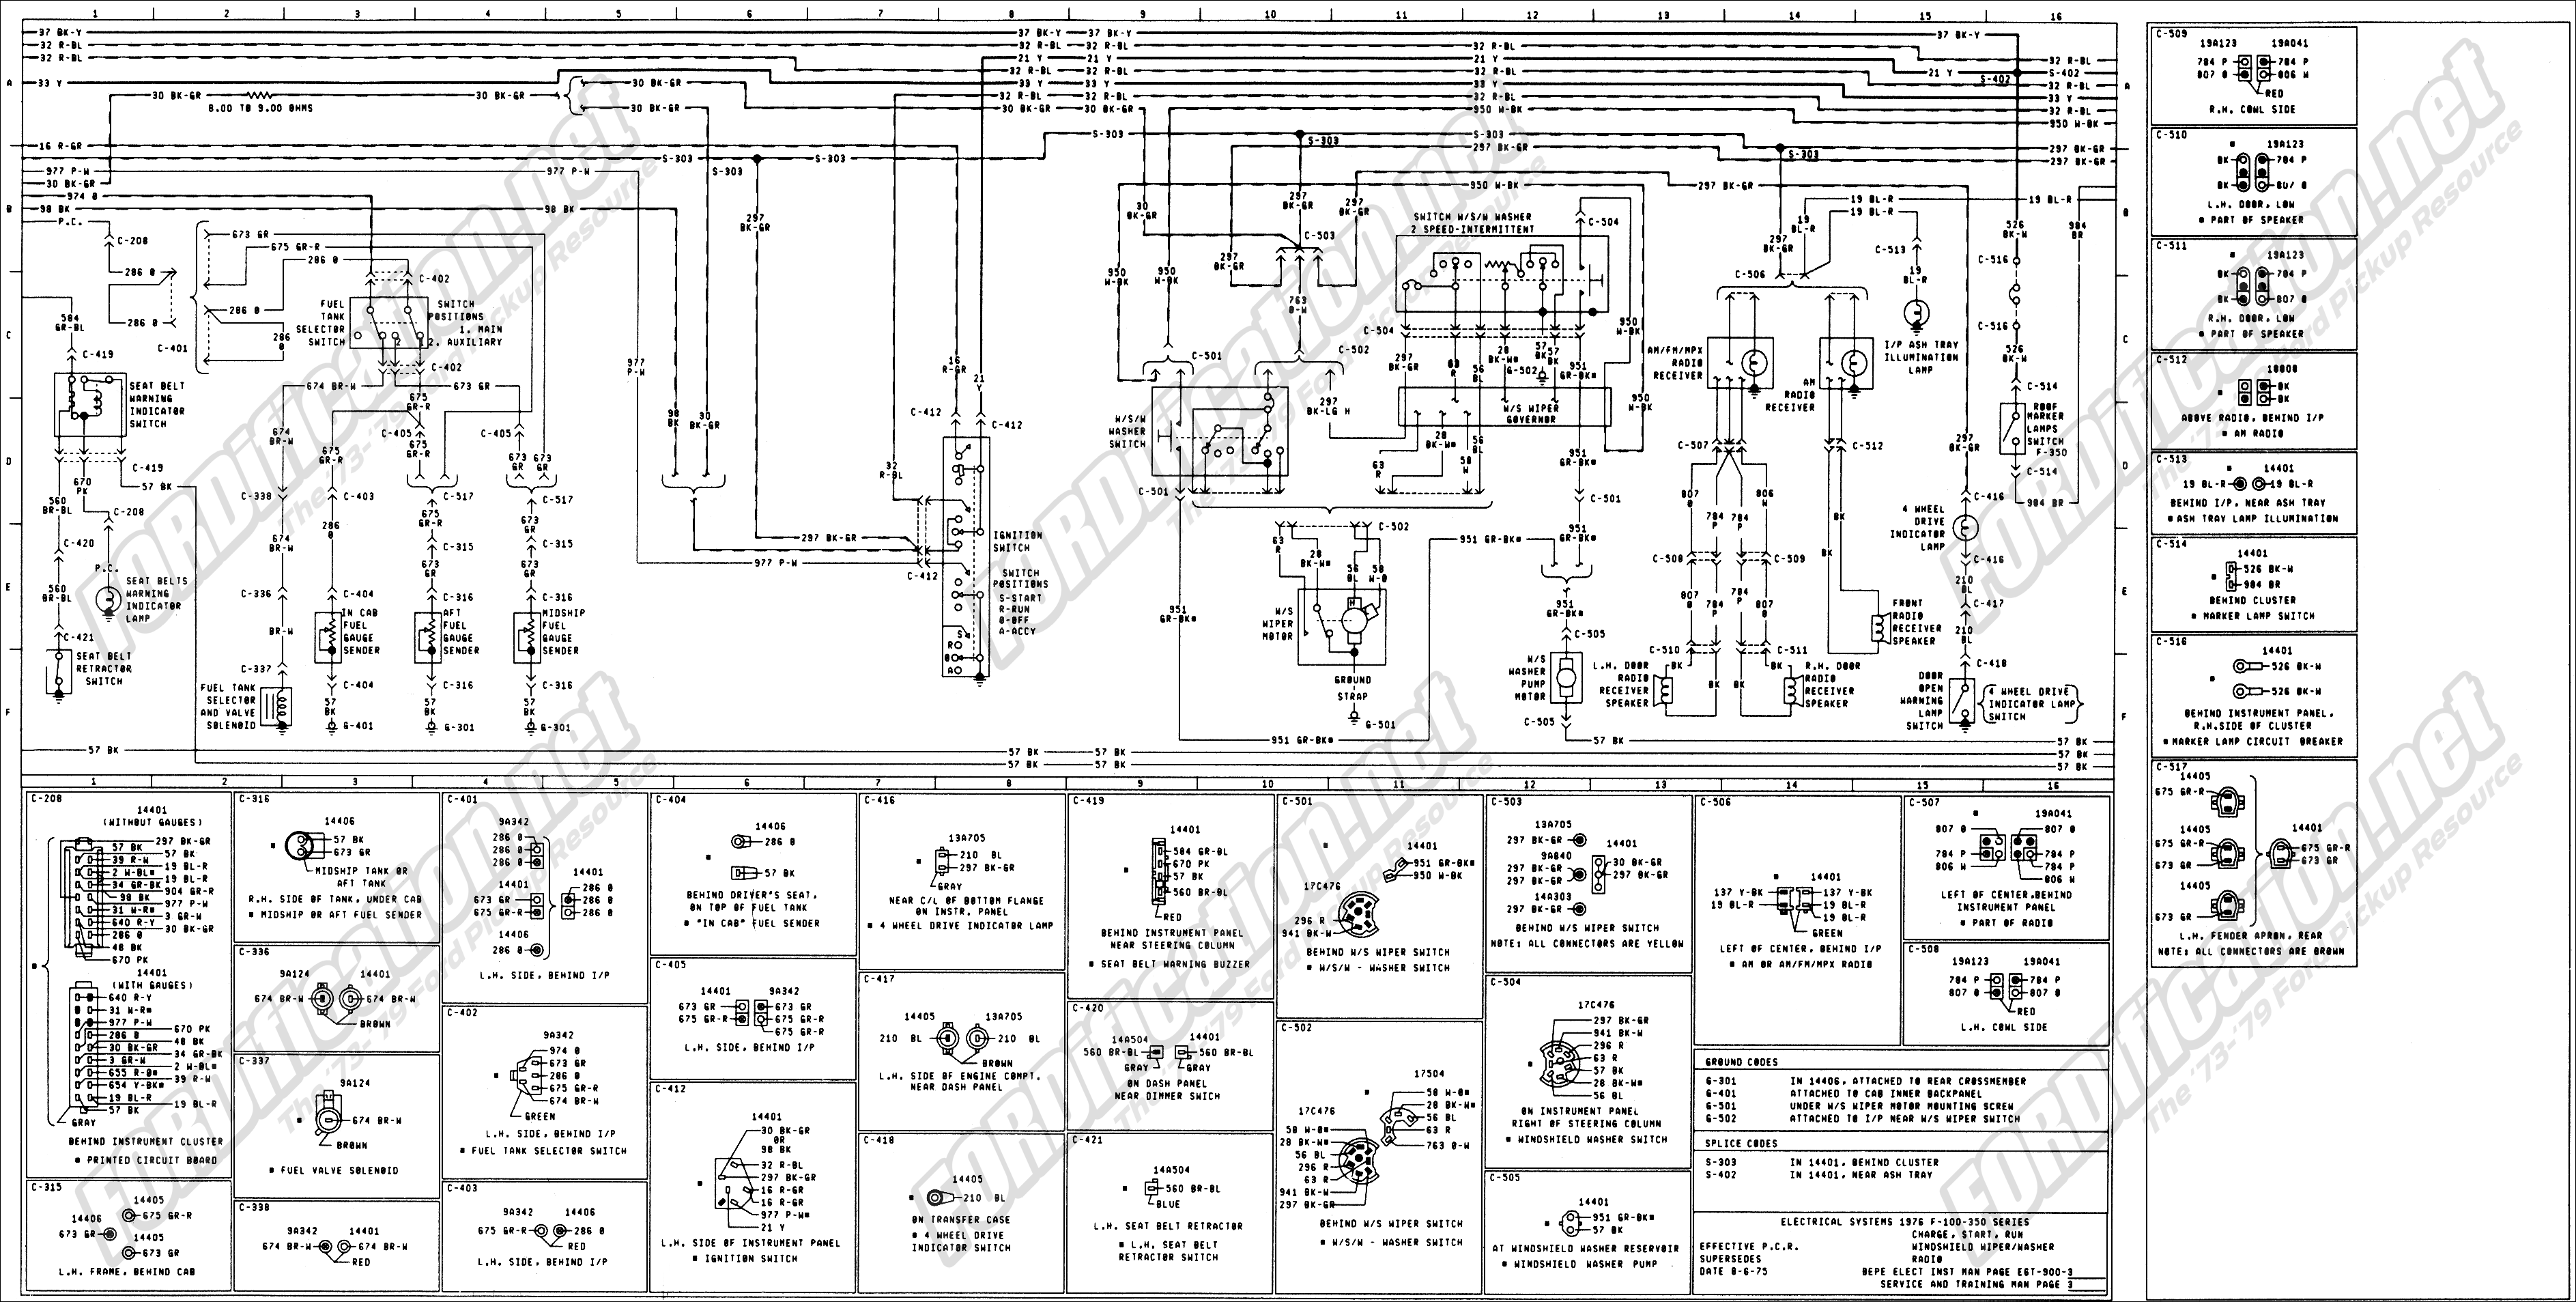 wiring_76master_3of9 ford ranger & bronco ii electrical diagrams at the ranger station 1979 ford truck fuse box diagram at mifinder.co